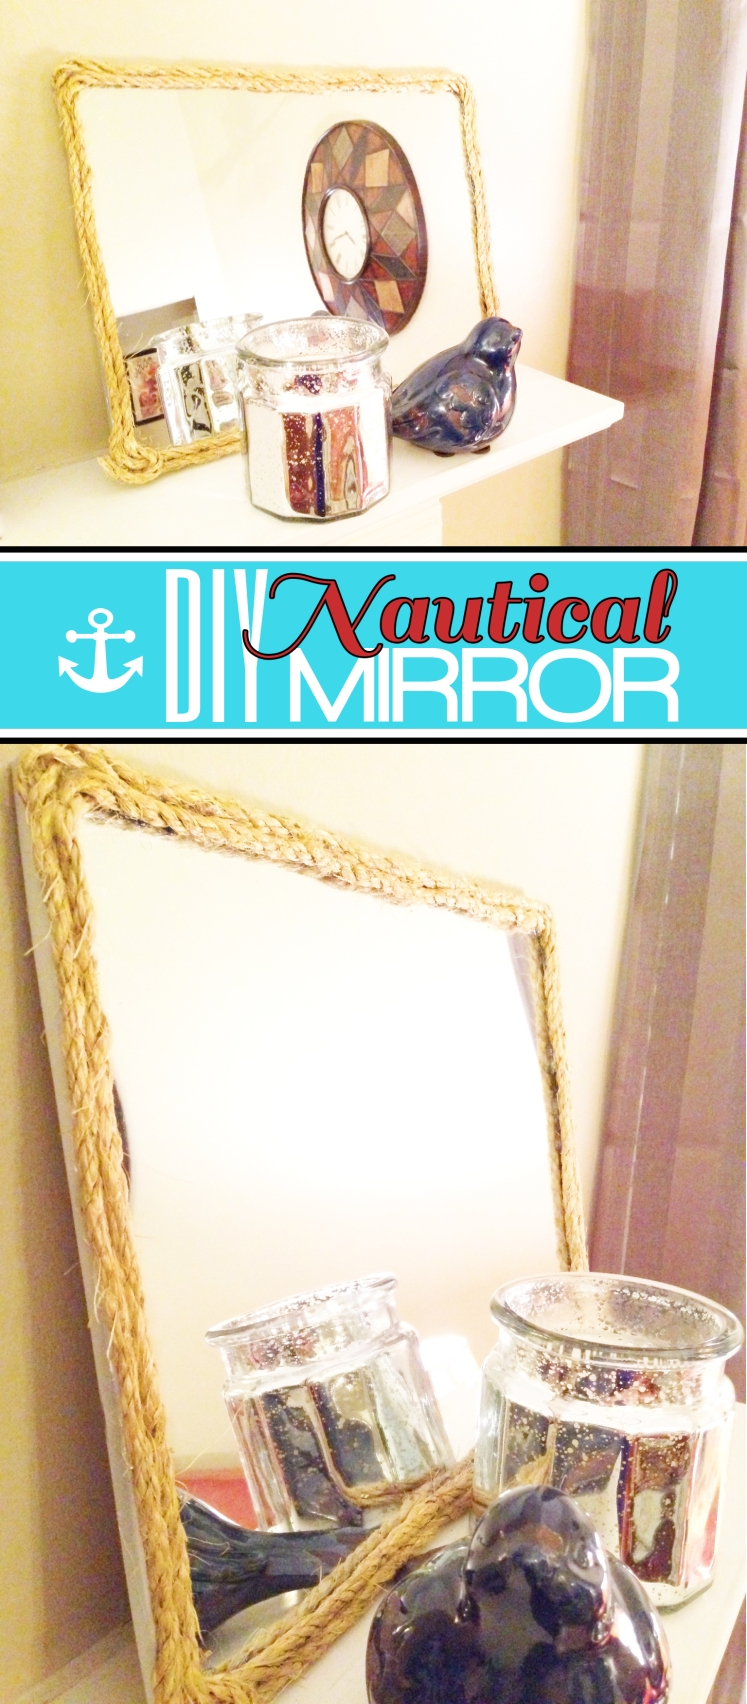 3.12.14 diy nautical mirror